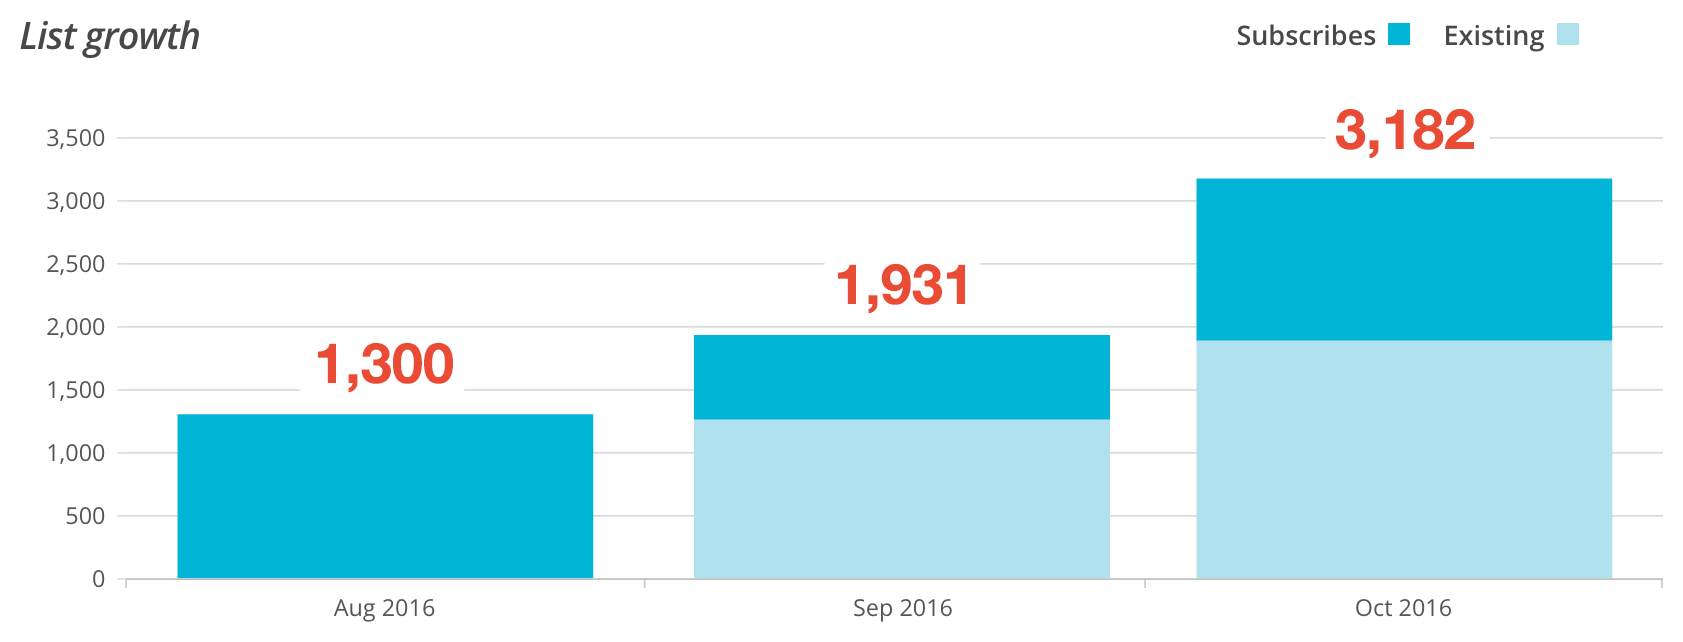 Newsletter Growth from August through October